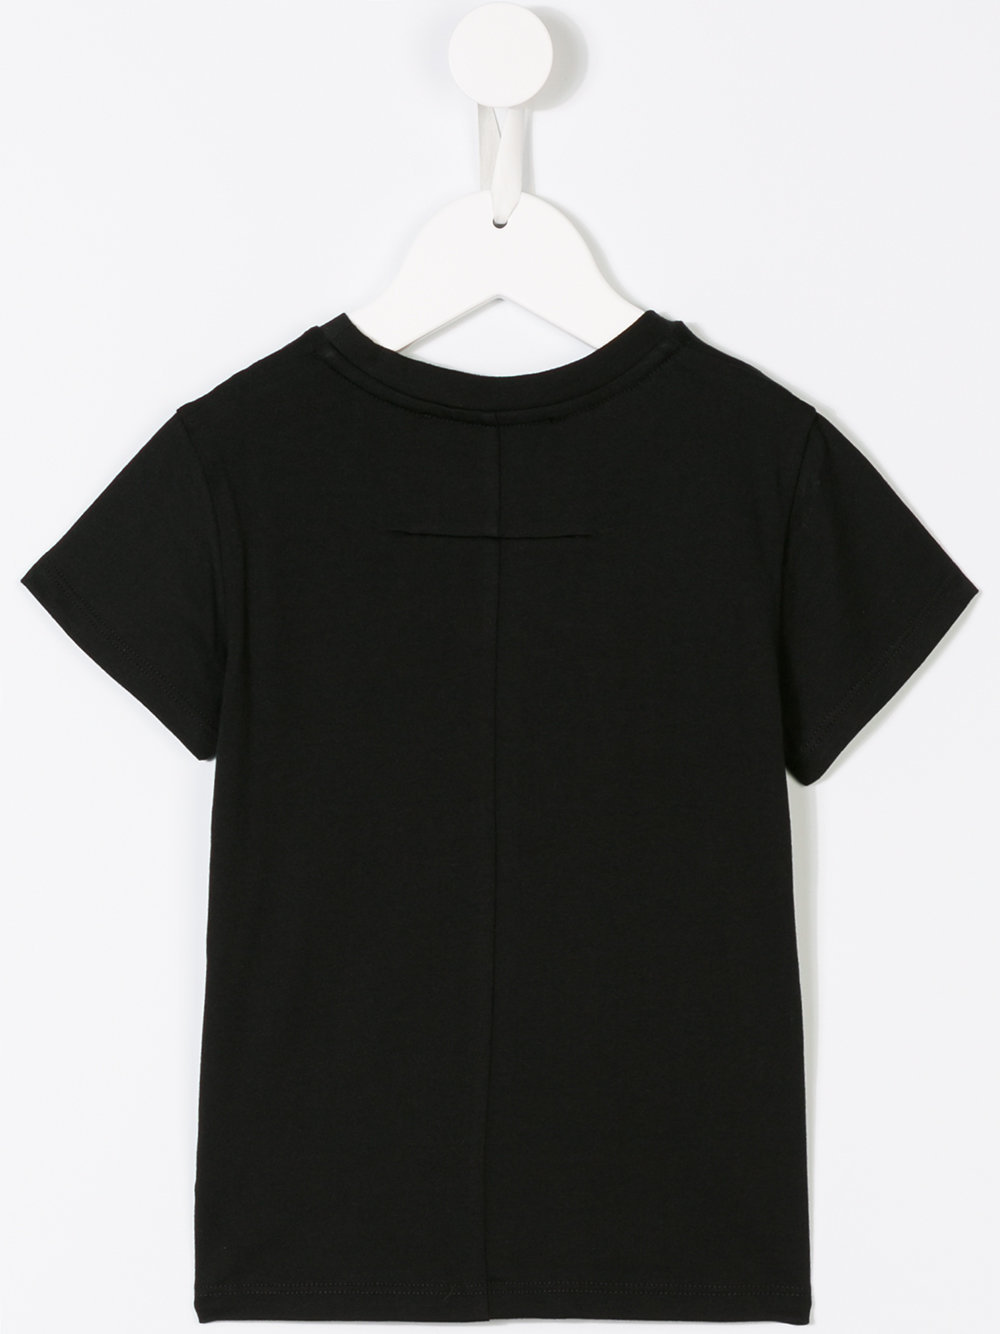 17AW GIVENCHY 大人もOK 8-14歳 ロゴ(小)半袖 T シャツ 黒